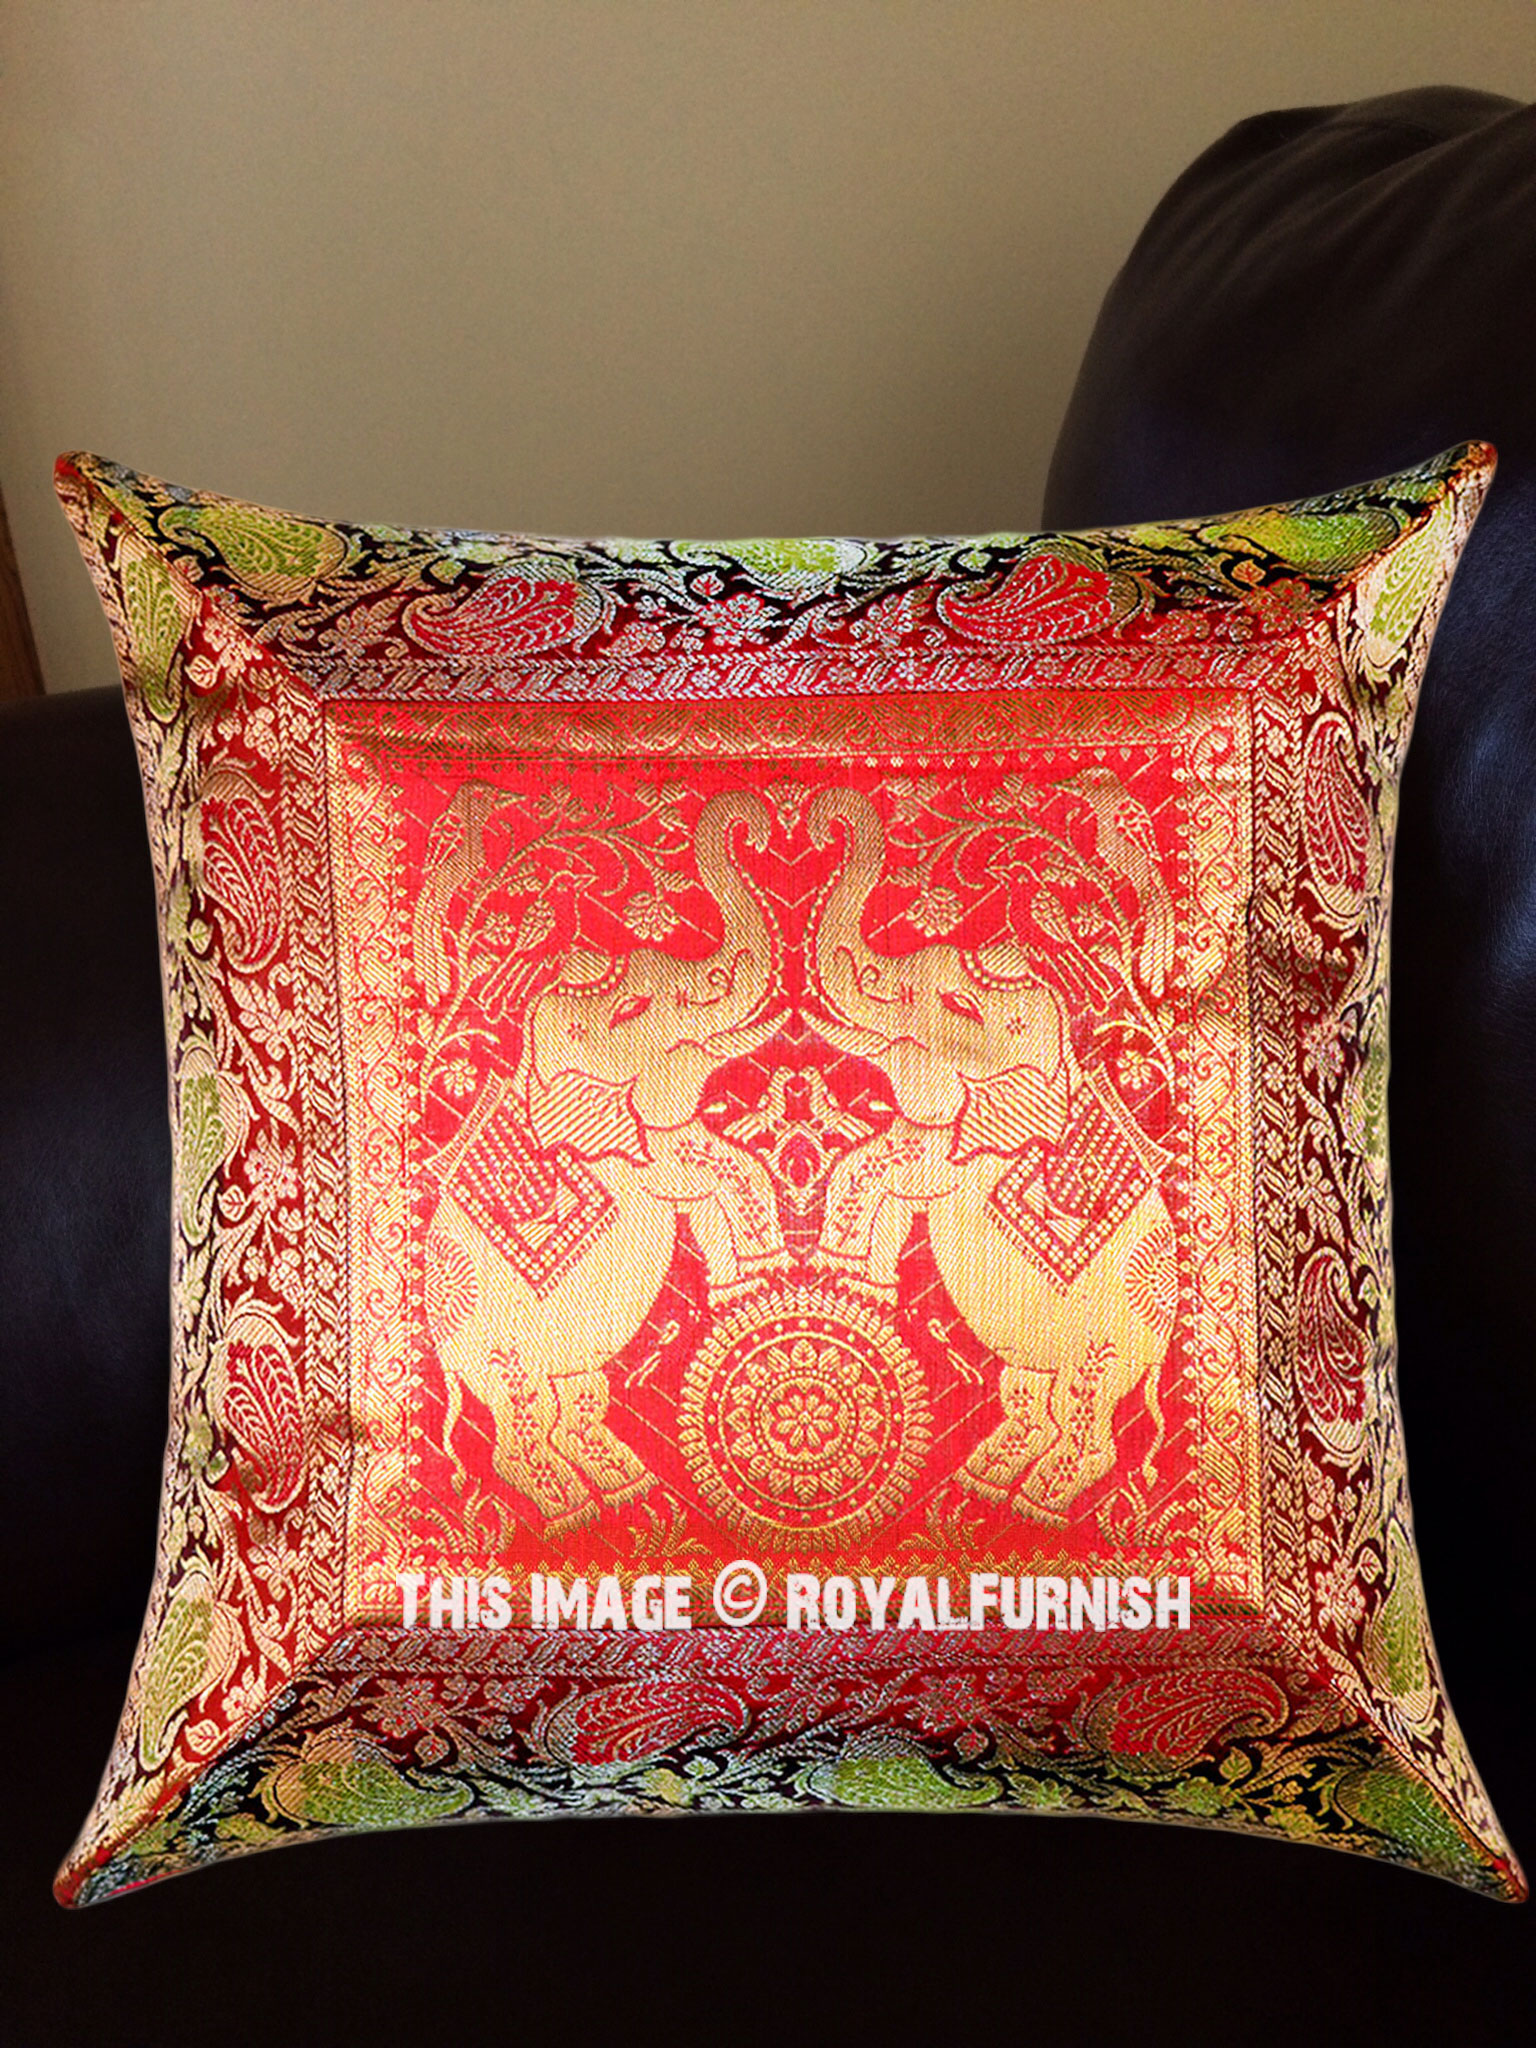 Maroon And Gold Color Elephants On Wheels Square Throw